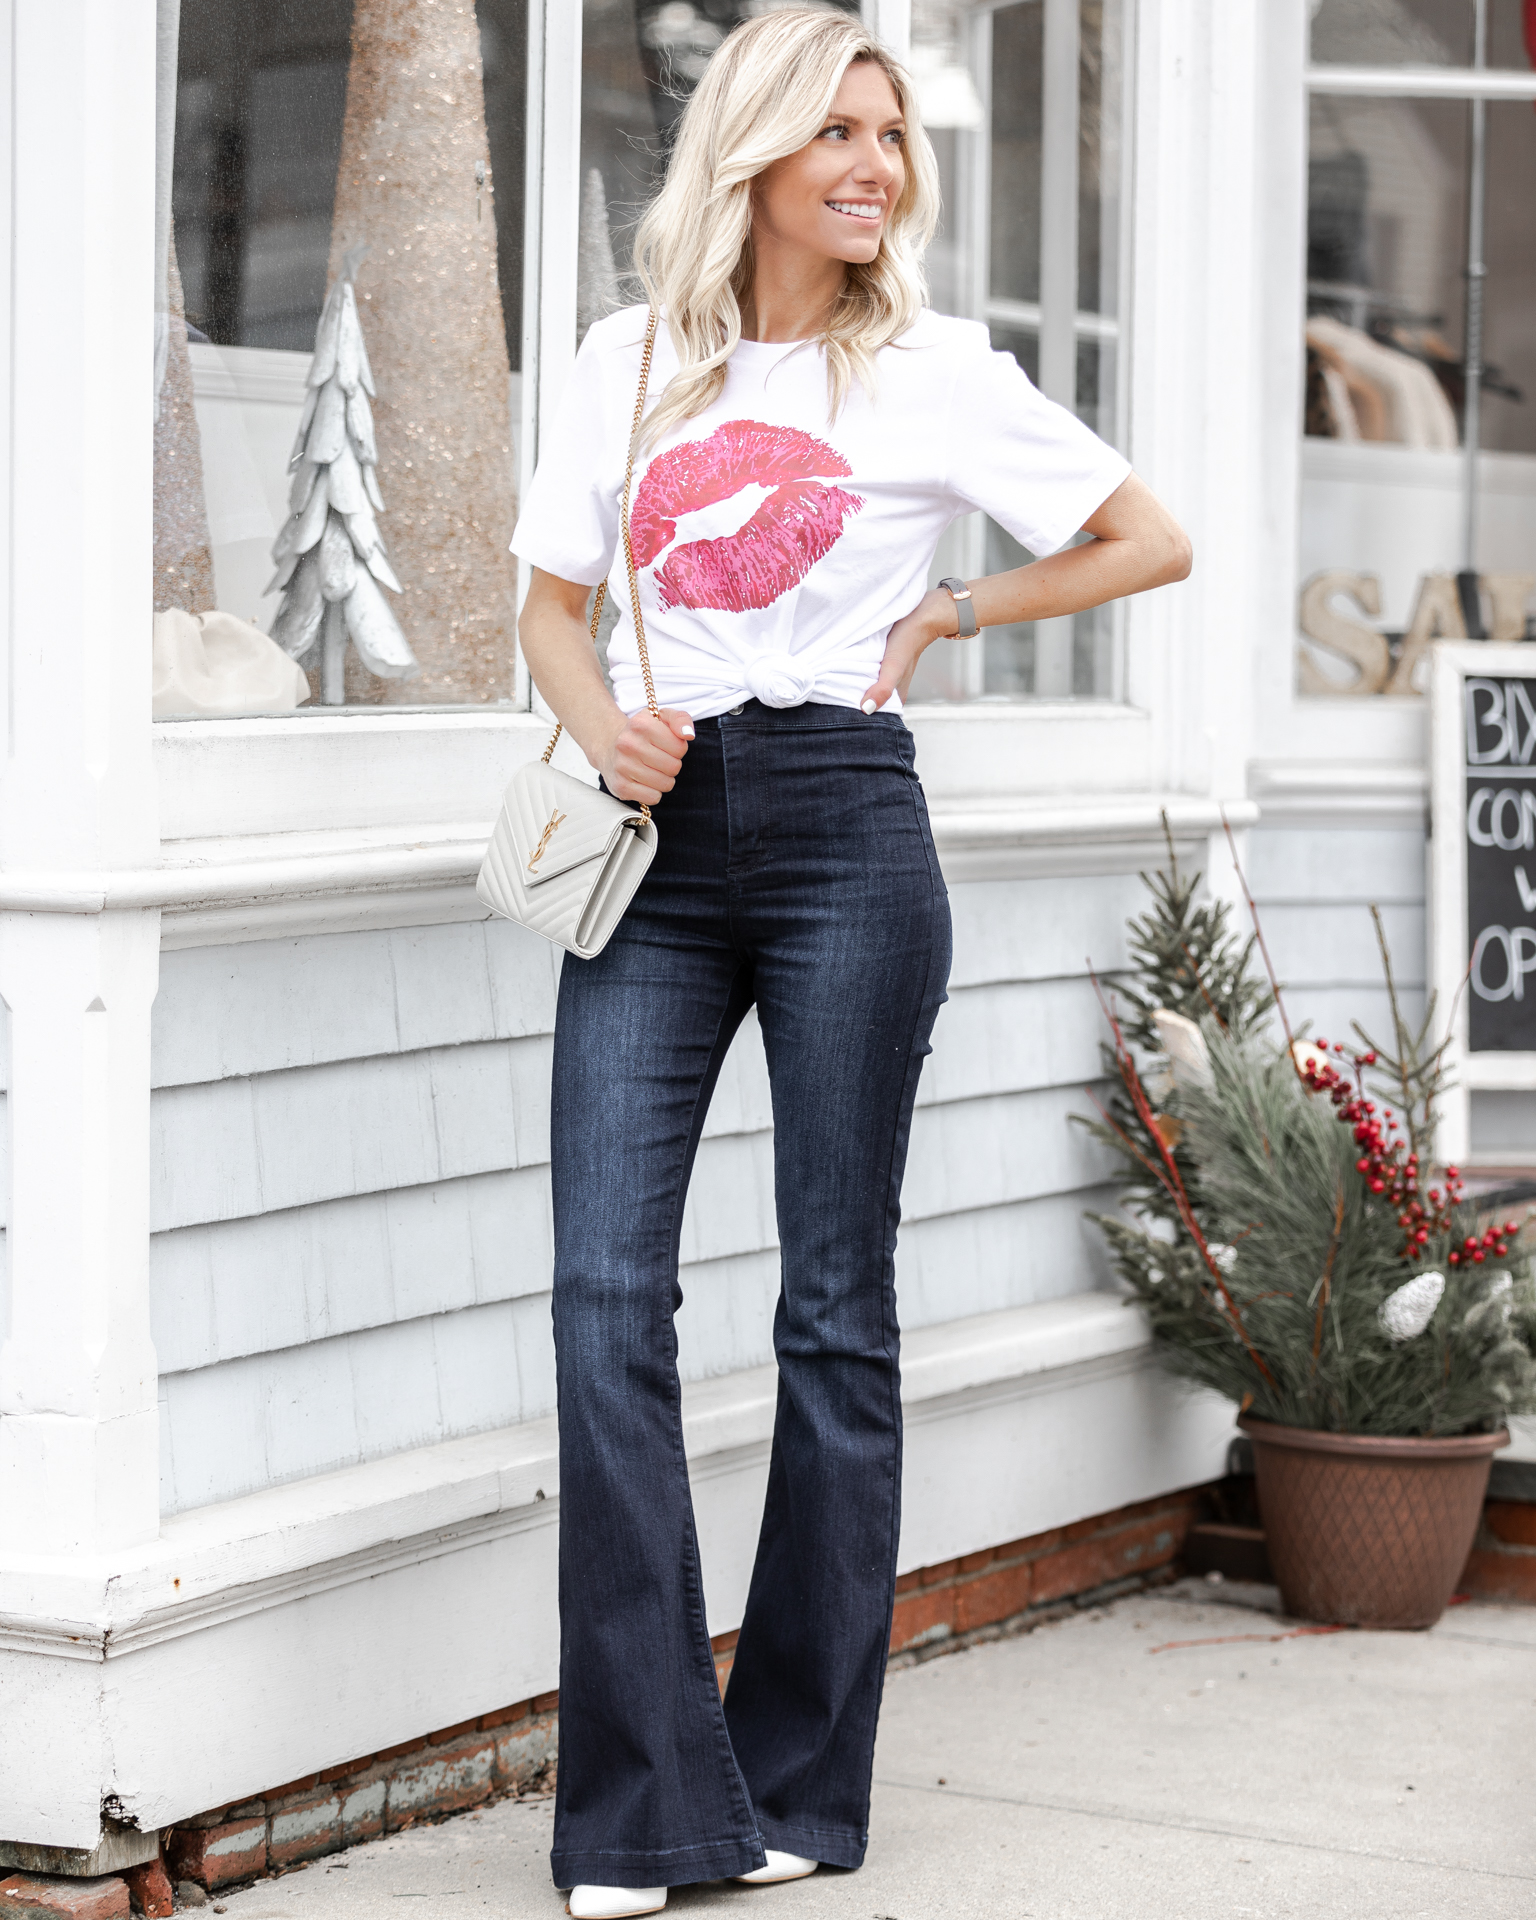 knotted-tee-for-valentines-day-the-glamorous-gal